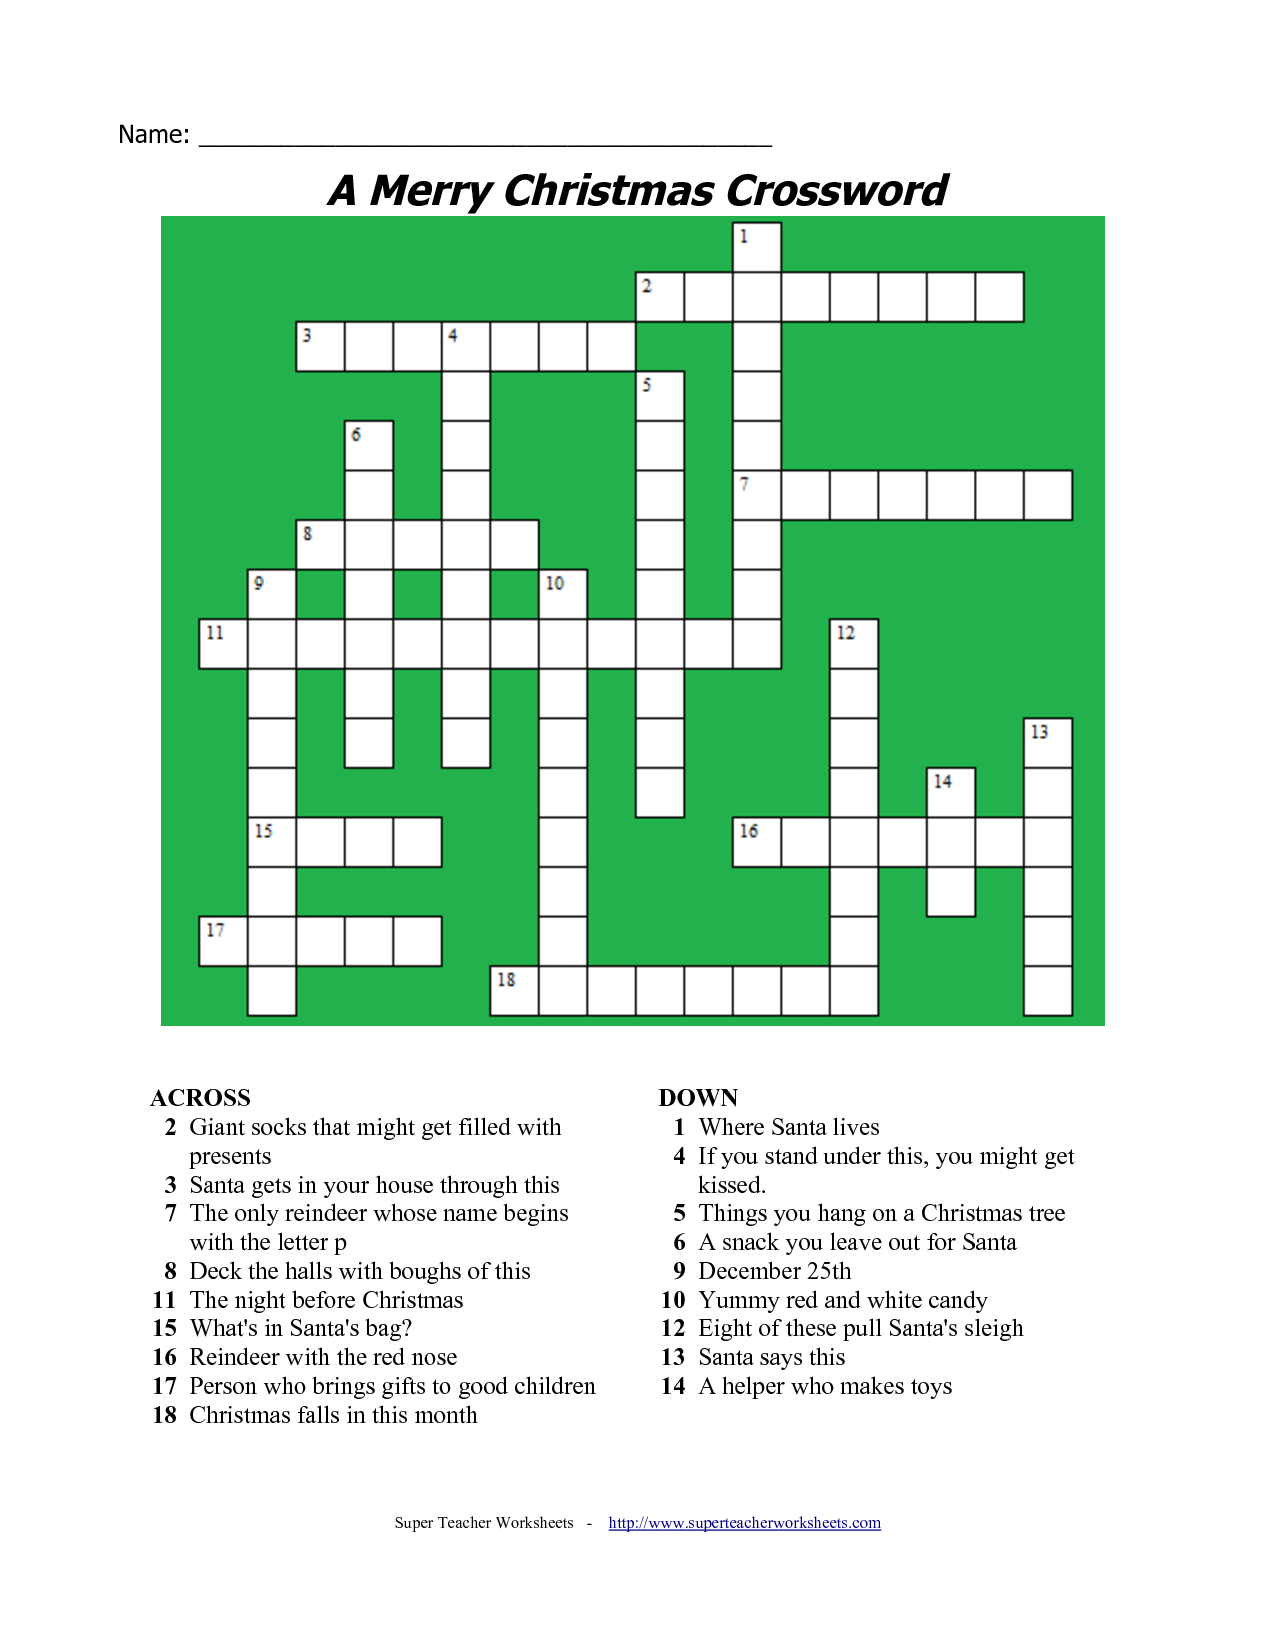 20 Fun Printable Christmas Crossword Puzzles | Kittybabylove - Printable Christmas Crossword Puzzles For Adults